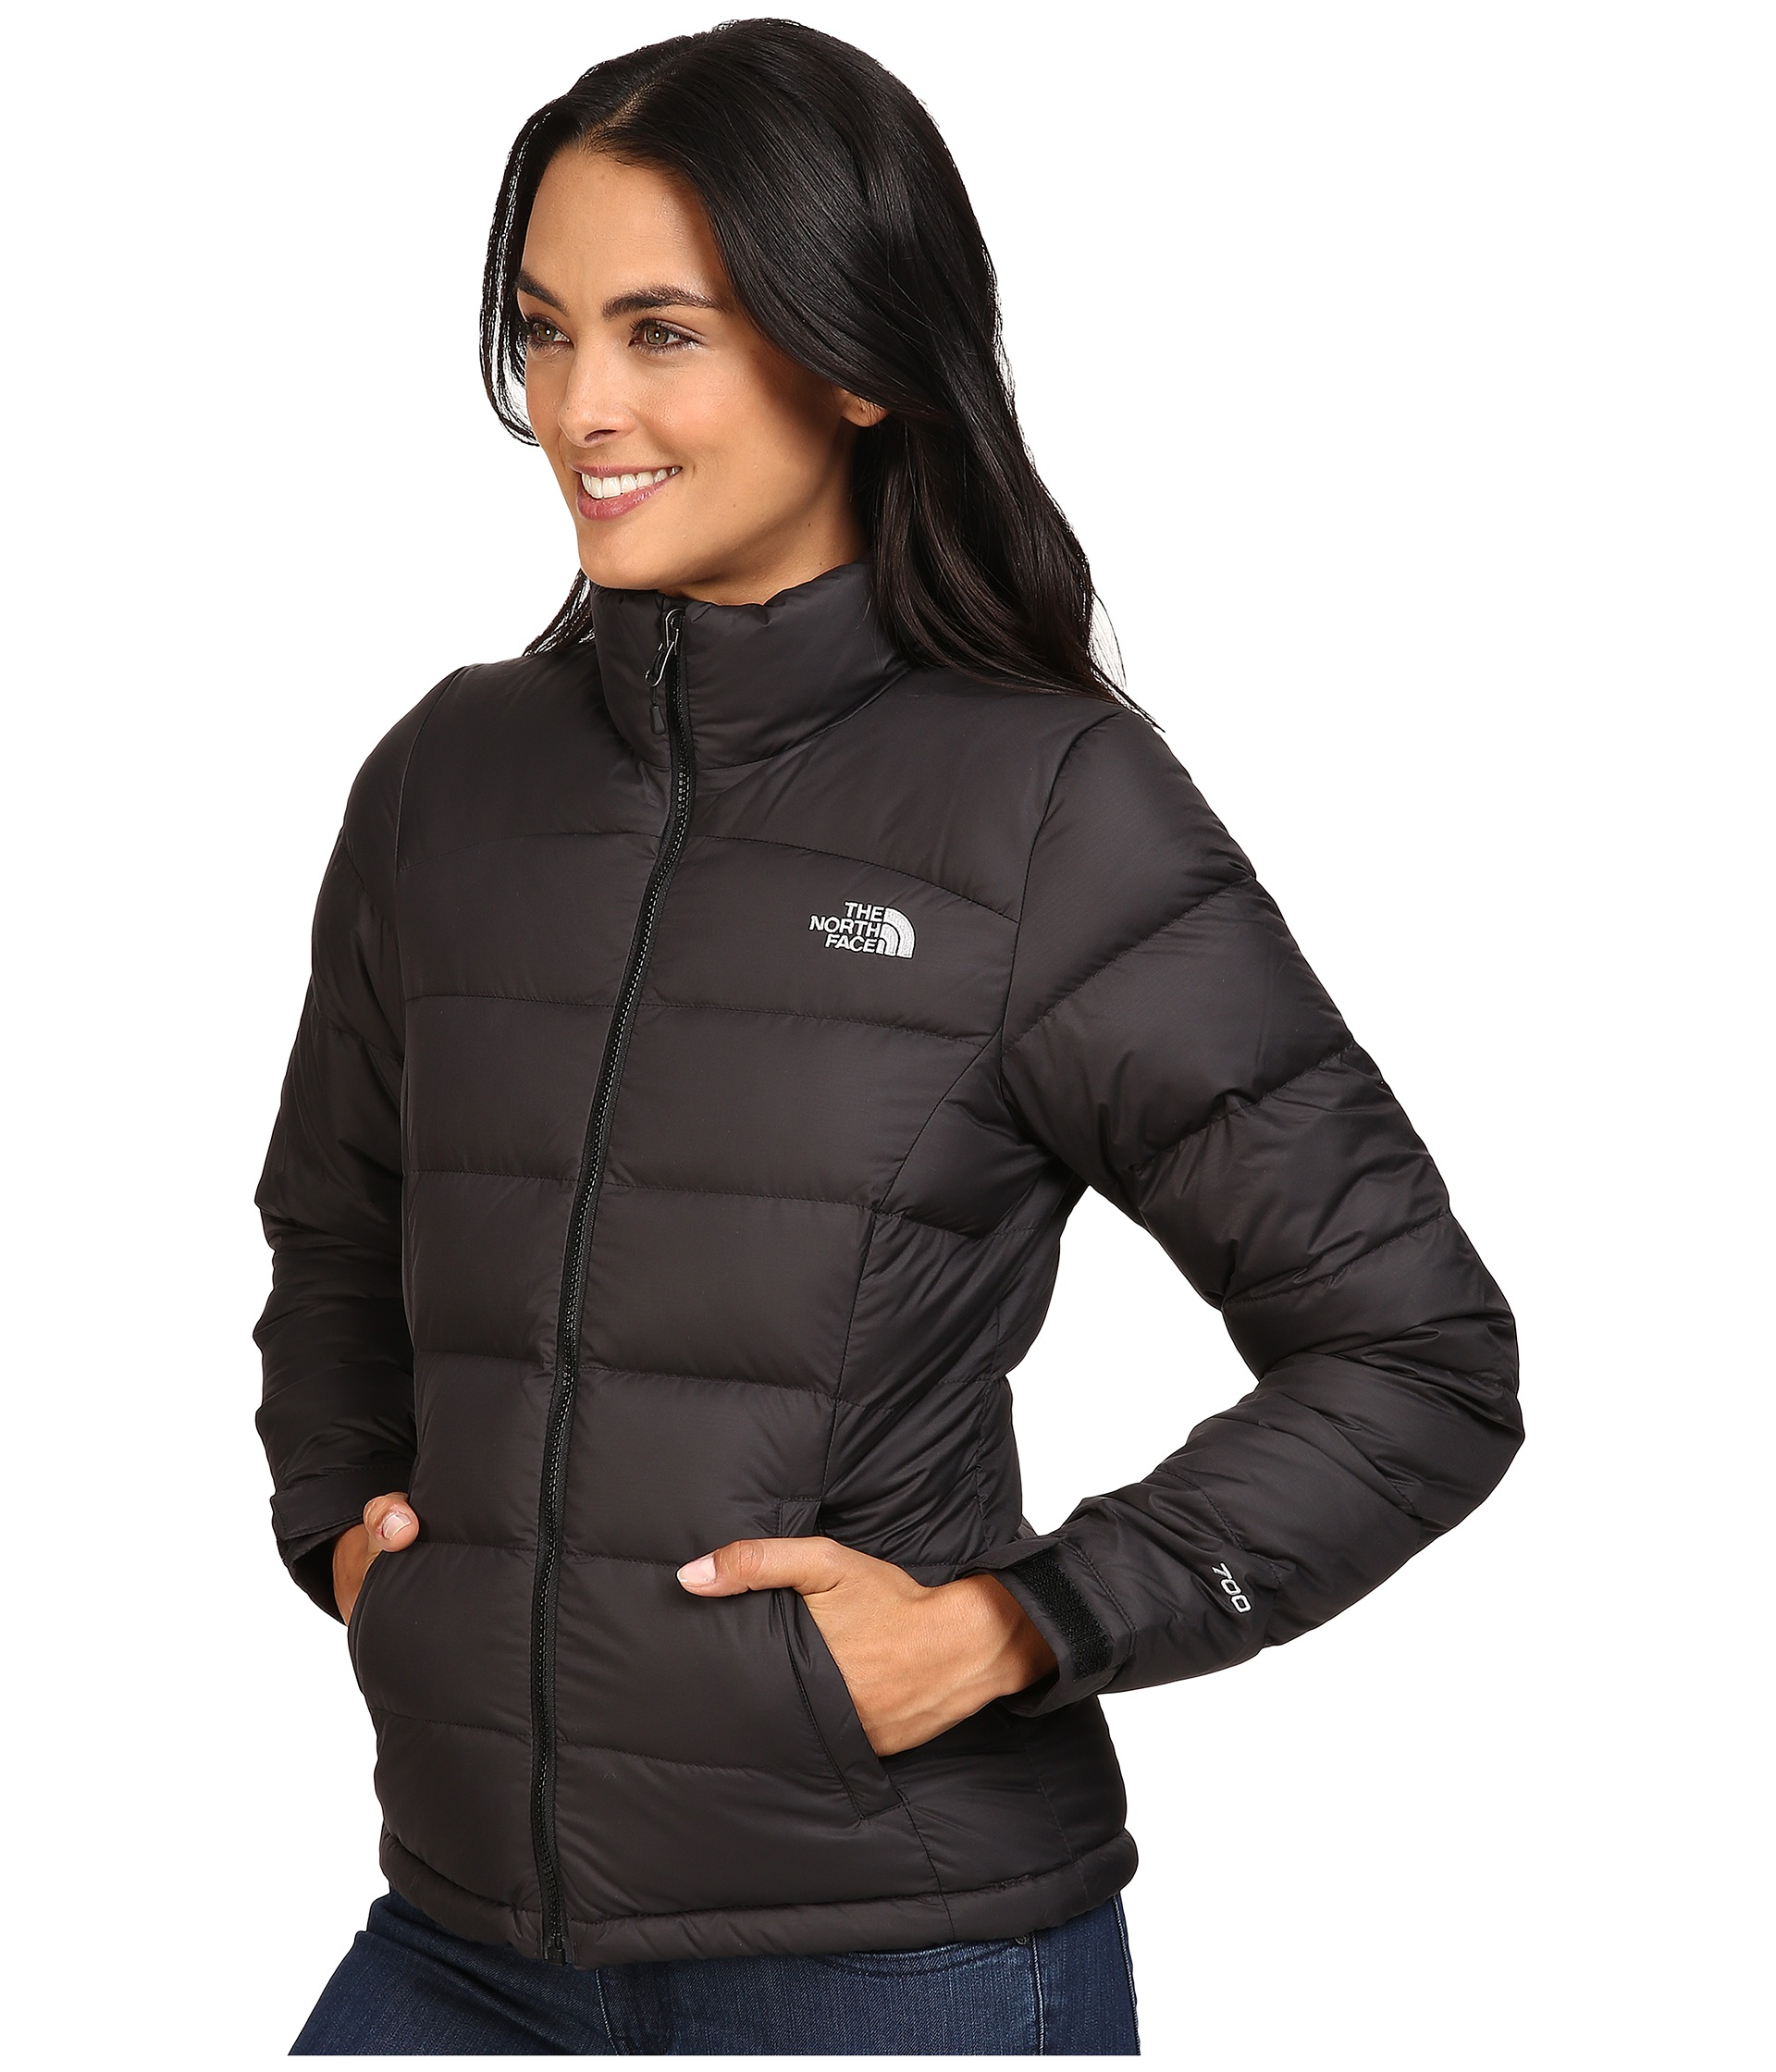 the north face nuptse 2 jacket free shipping both ways. Black Bedroom Furniture Sets. Home Design Ideas